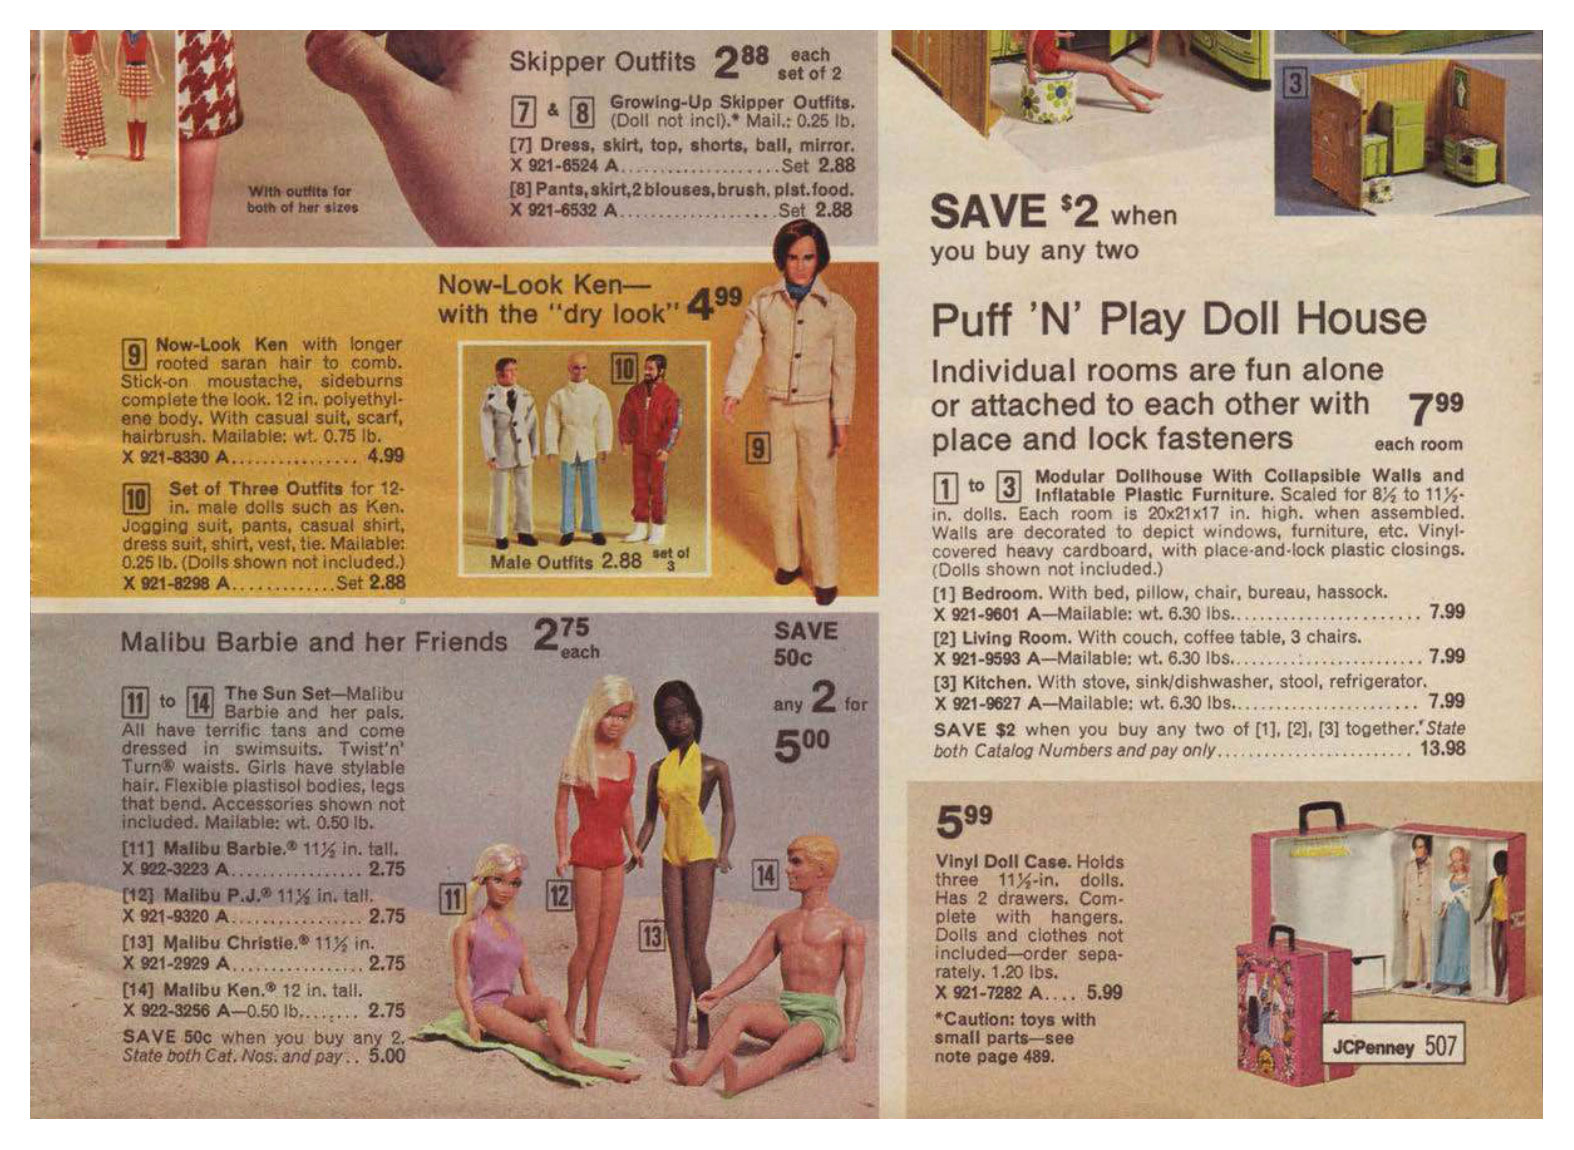 From 1976 JCPenney Christmas catalogue